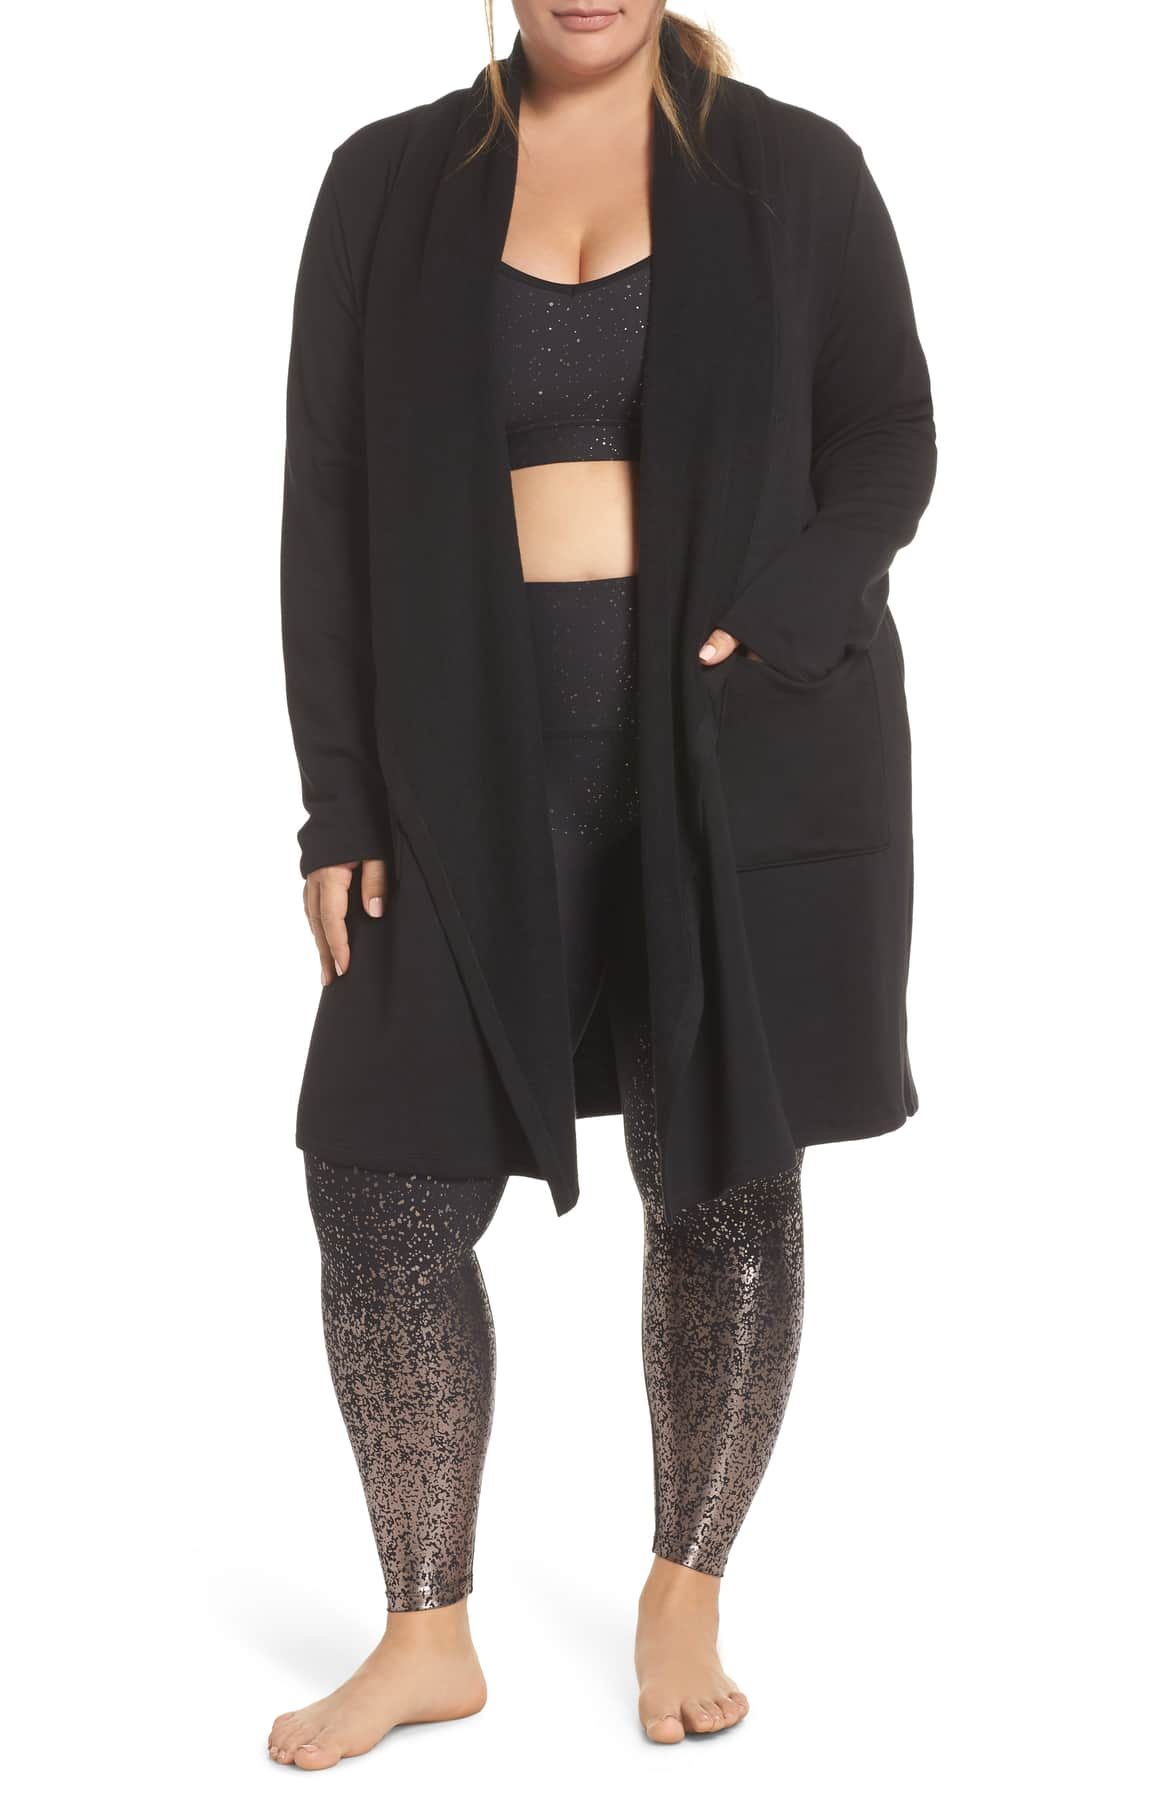 BEYOND YOGA Drape Long Cardigan and Ombre Leggings at Nordstrom